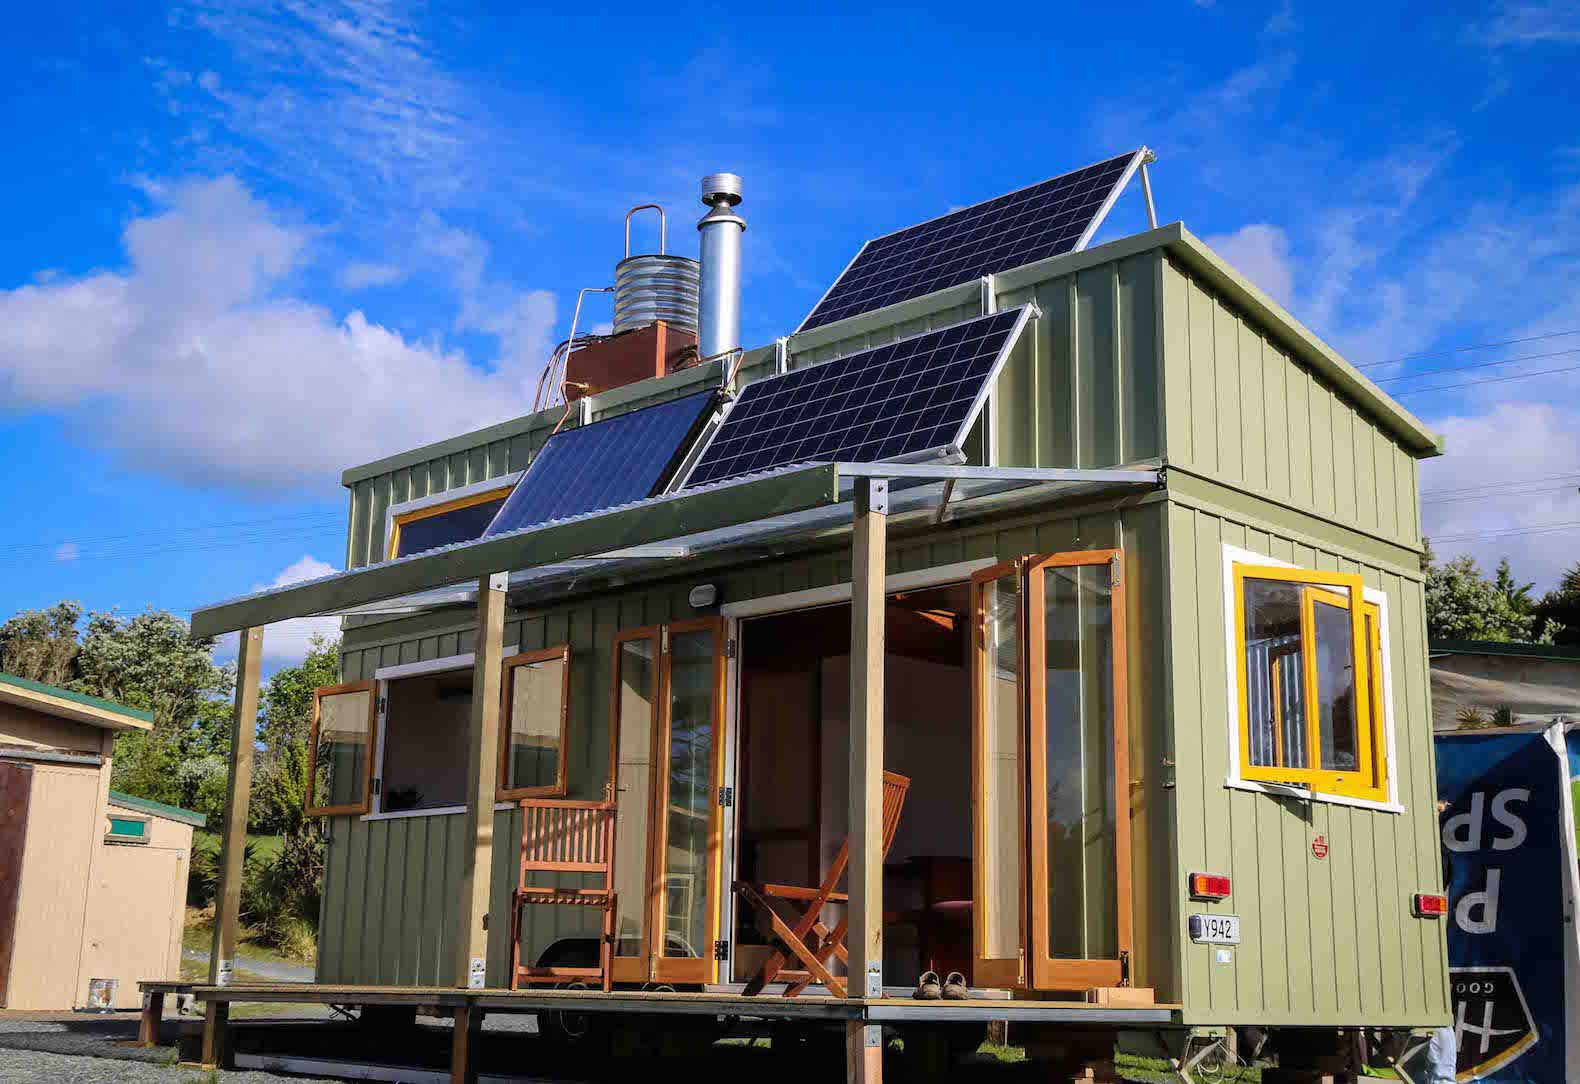 Luxurious Tiny Home In New Zealand Is Off Grid And 100 Self Sustaining Modern Tiny House Tiny House Plans Off Grid Tiny House